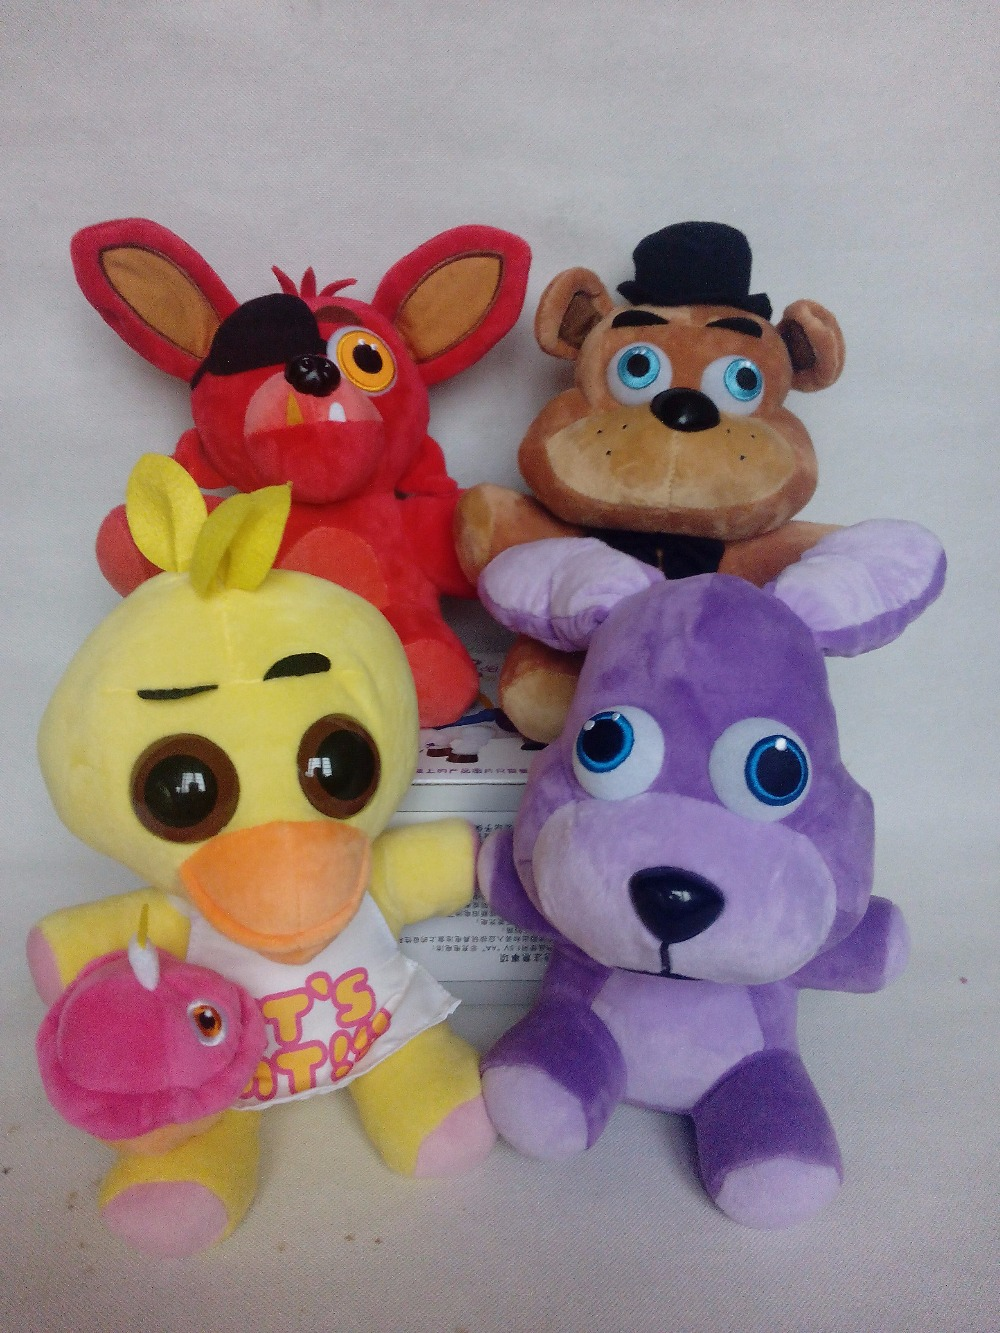 40pcs/lot 25cm FNAF Toygs five nights at freddy's 4 foxy bear toys plush dolls stuffed soft toys Wholesale!(China (Mainland))